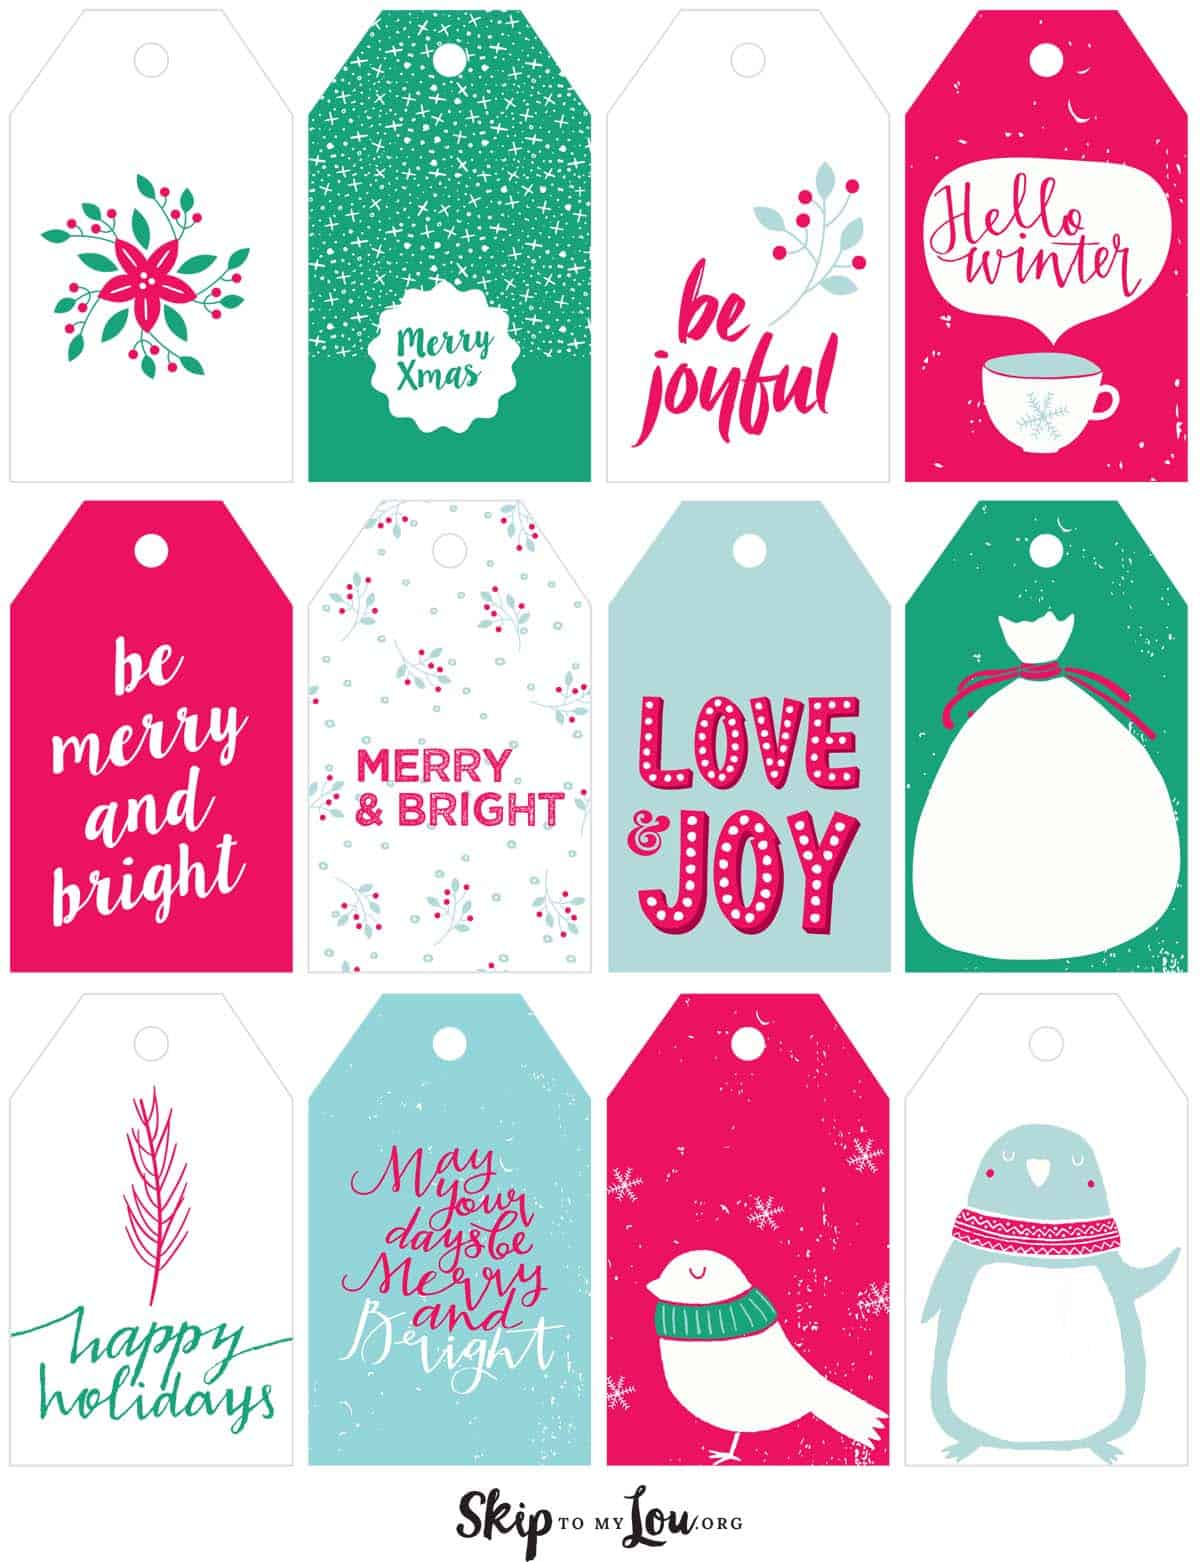 graphic regarding Gift Tags Printable identified as Printable Xmas Present Tags Pass up Towards My Lou